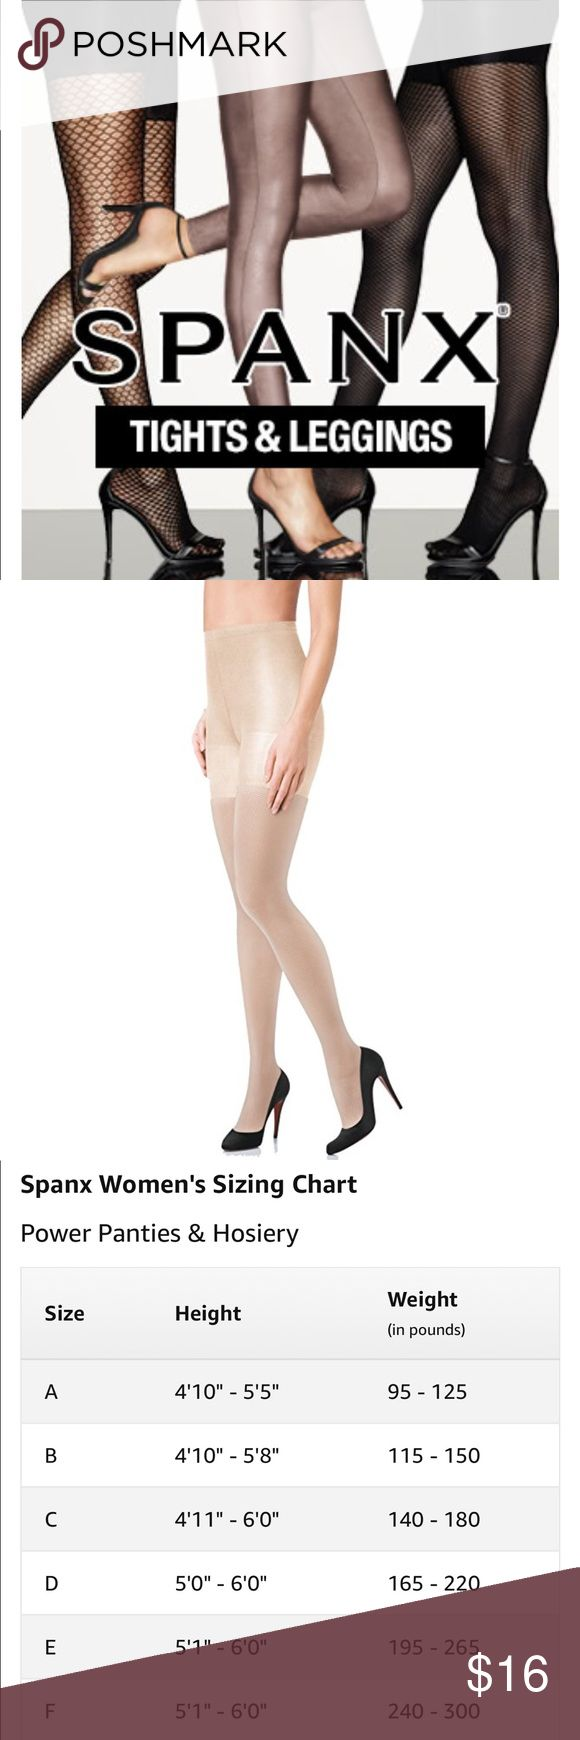 BRAND NEW SPANX TIGHTS FISHNET NUDE SIZE E Brand new in original packaging.  ❤️ SPANX ❤️ Color NUDE Please refer to SIZE CHART for fit details Comes from a smoke free home Bundle & save! SPANX Intimates & Sleepwear Shapewear